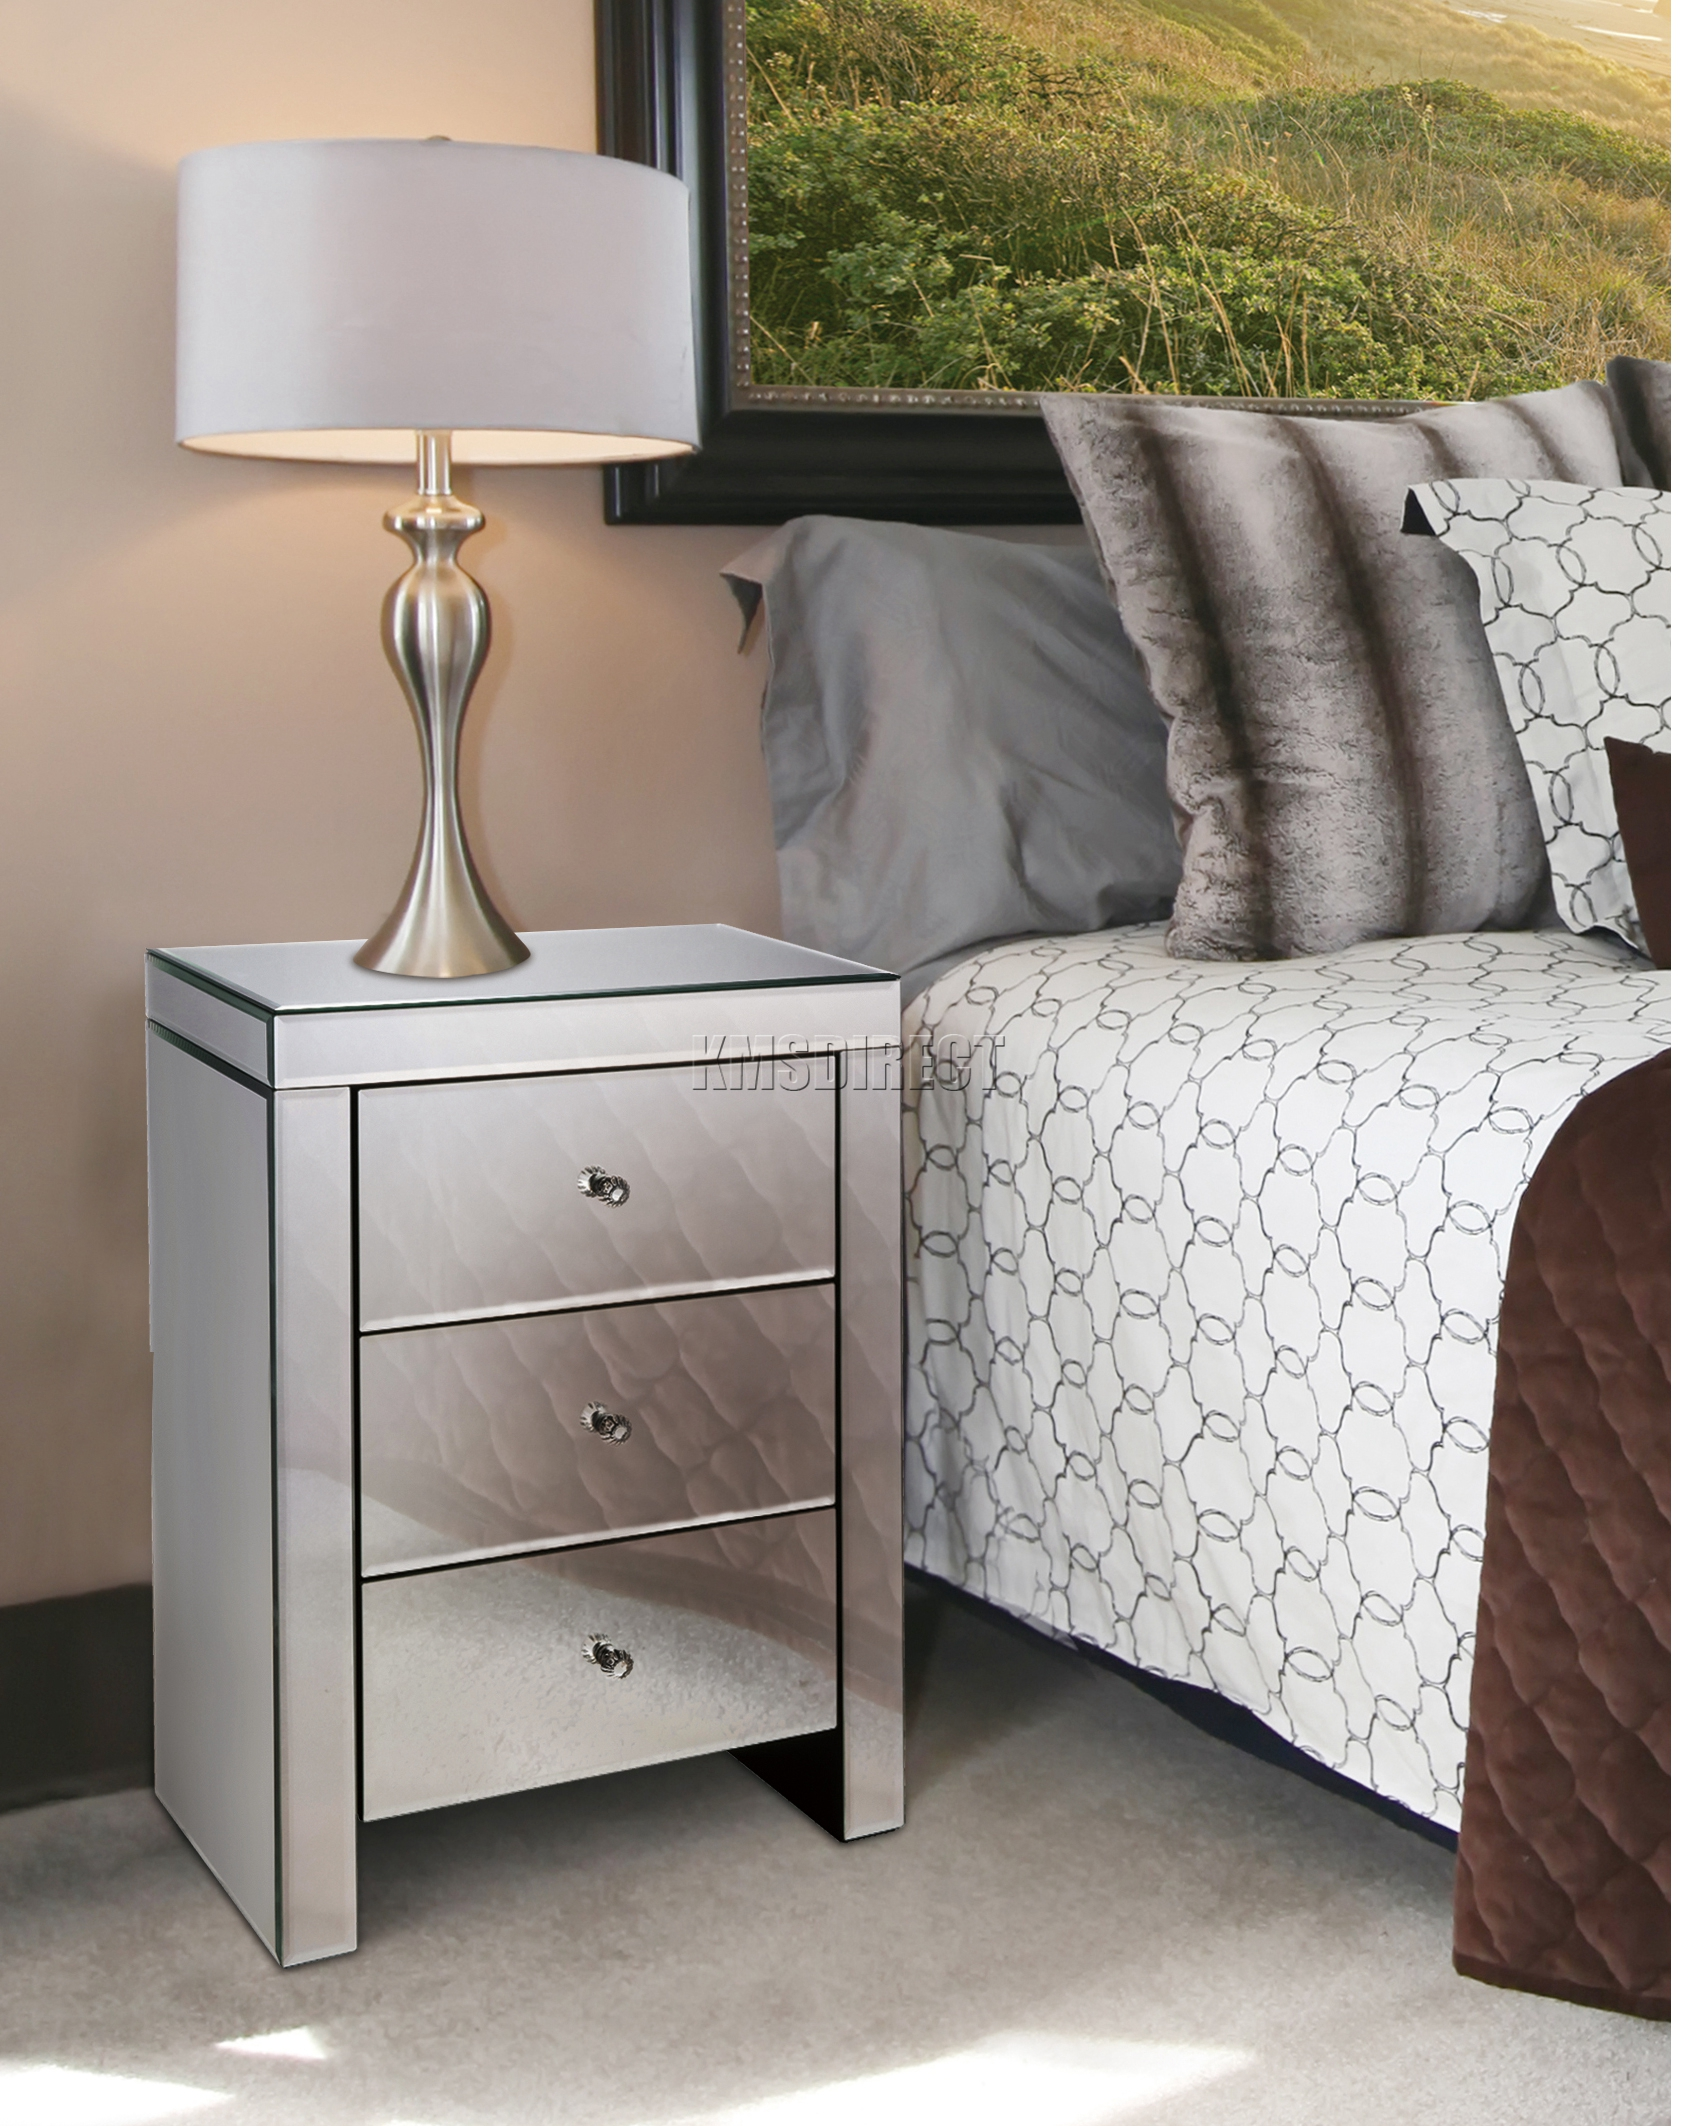 FoxHunter Mirrored Furniture Glass 3 Drawer Bedside Cabinet Table Bedroom MBC